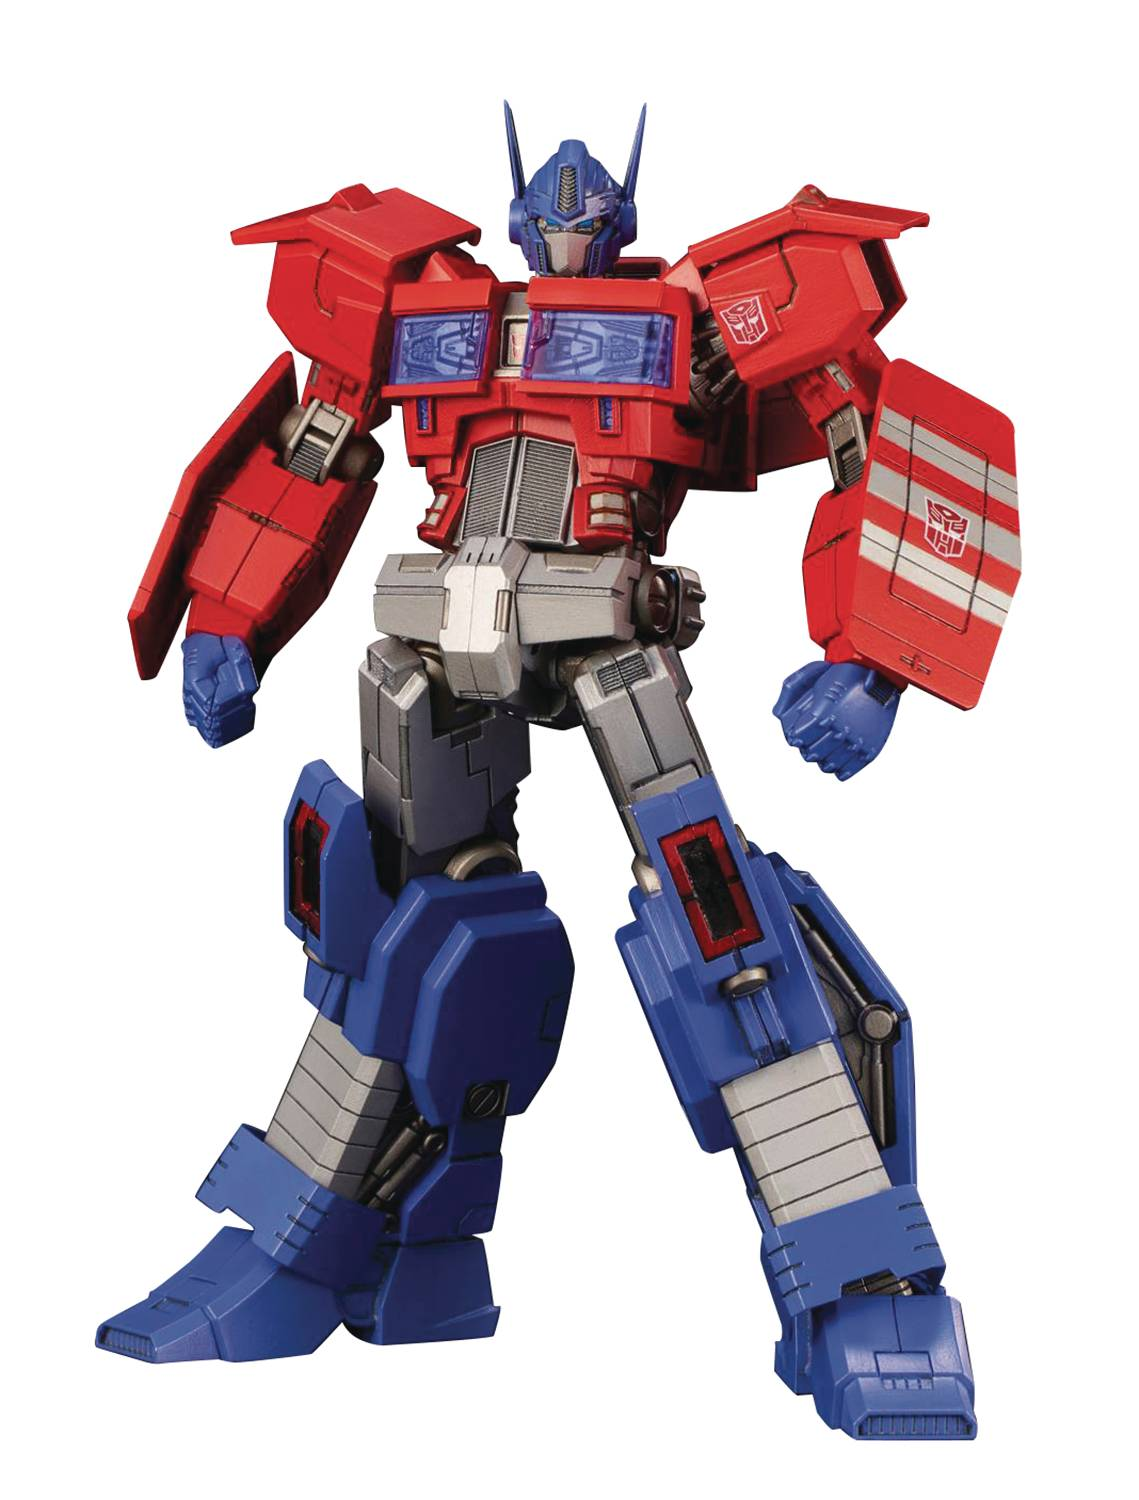 TRANSFORMERS OPTIMUS PRIME ATK MODE FURAI MDL KIT IDW VER